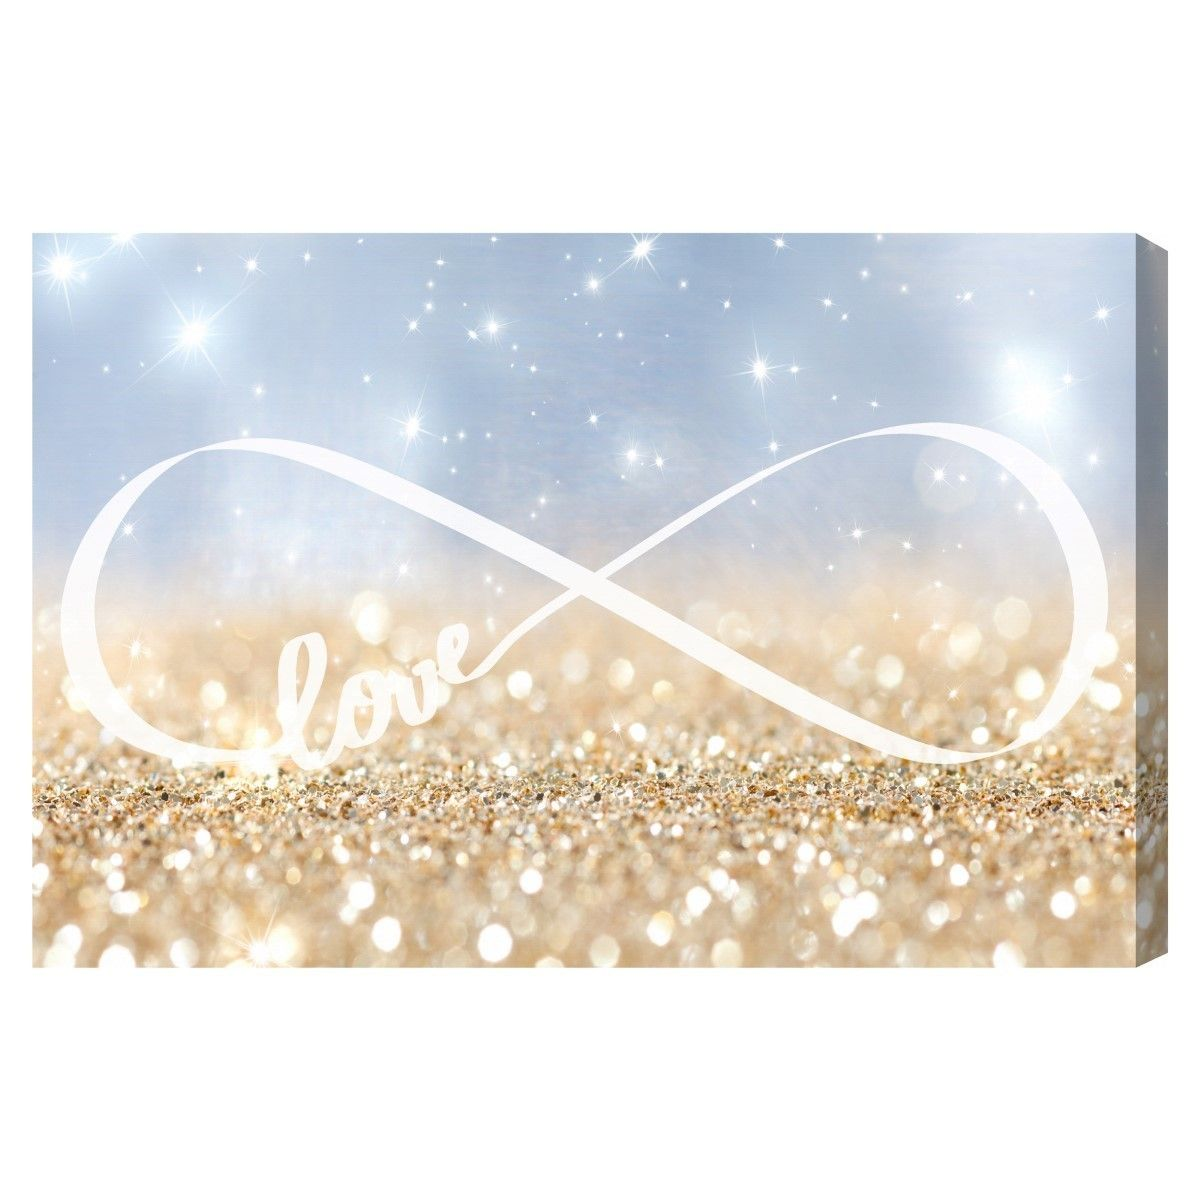 Infinite Love Sign Canvas Art.